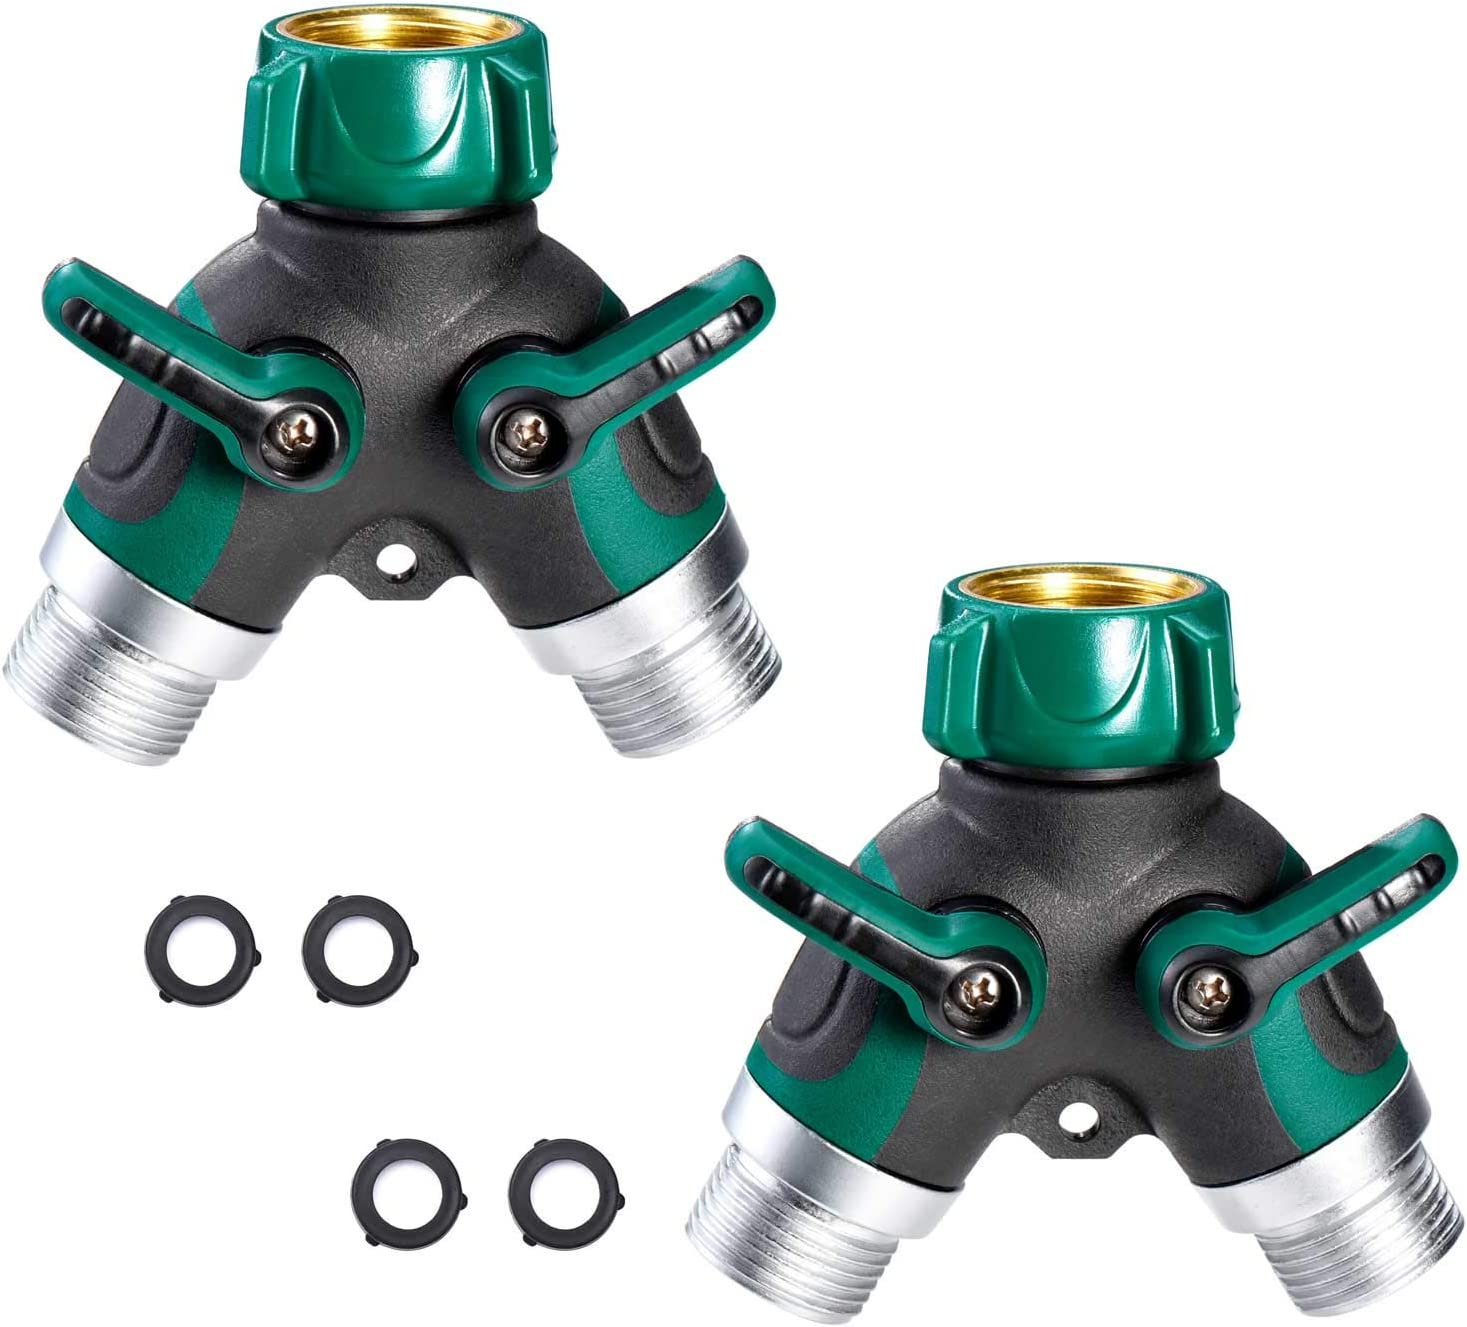 """Delxo Metal Body Hose Splitter,2 Pack,2 Way Water Hose Y Hose Sturdy Connector with 3/4"""" Connector and Rubberized Grip for Garden and Home Life (4 Free Washers)"""